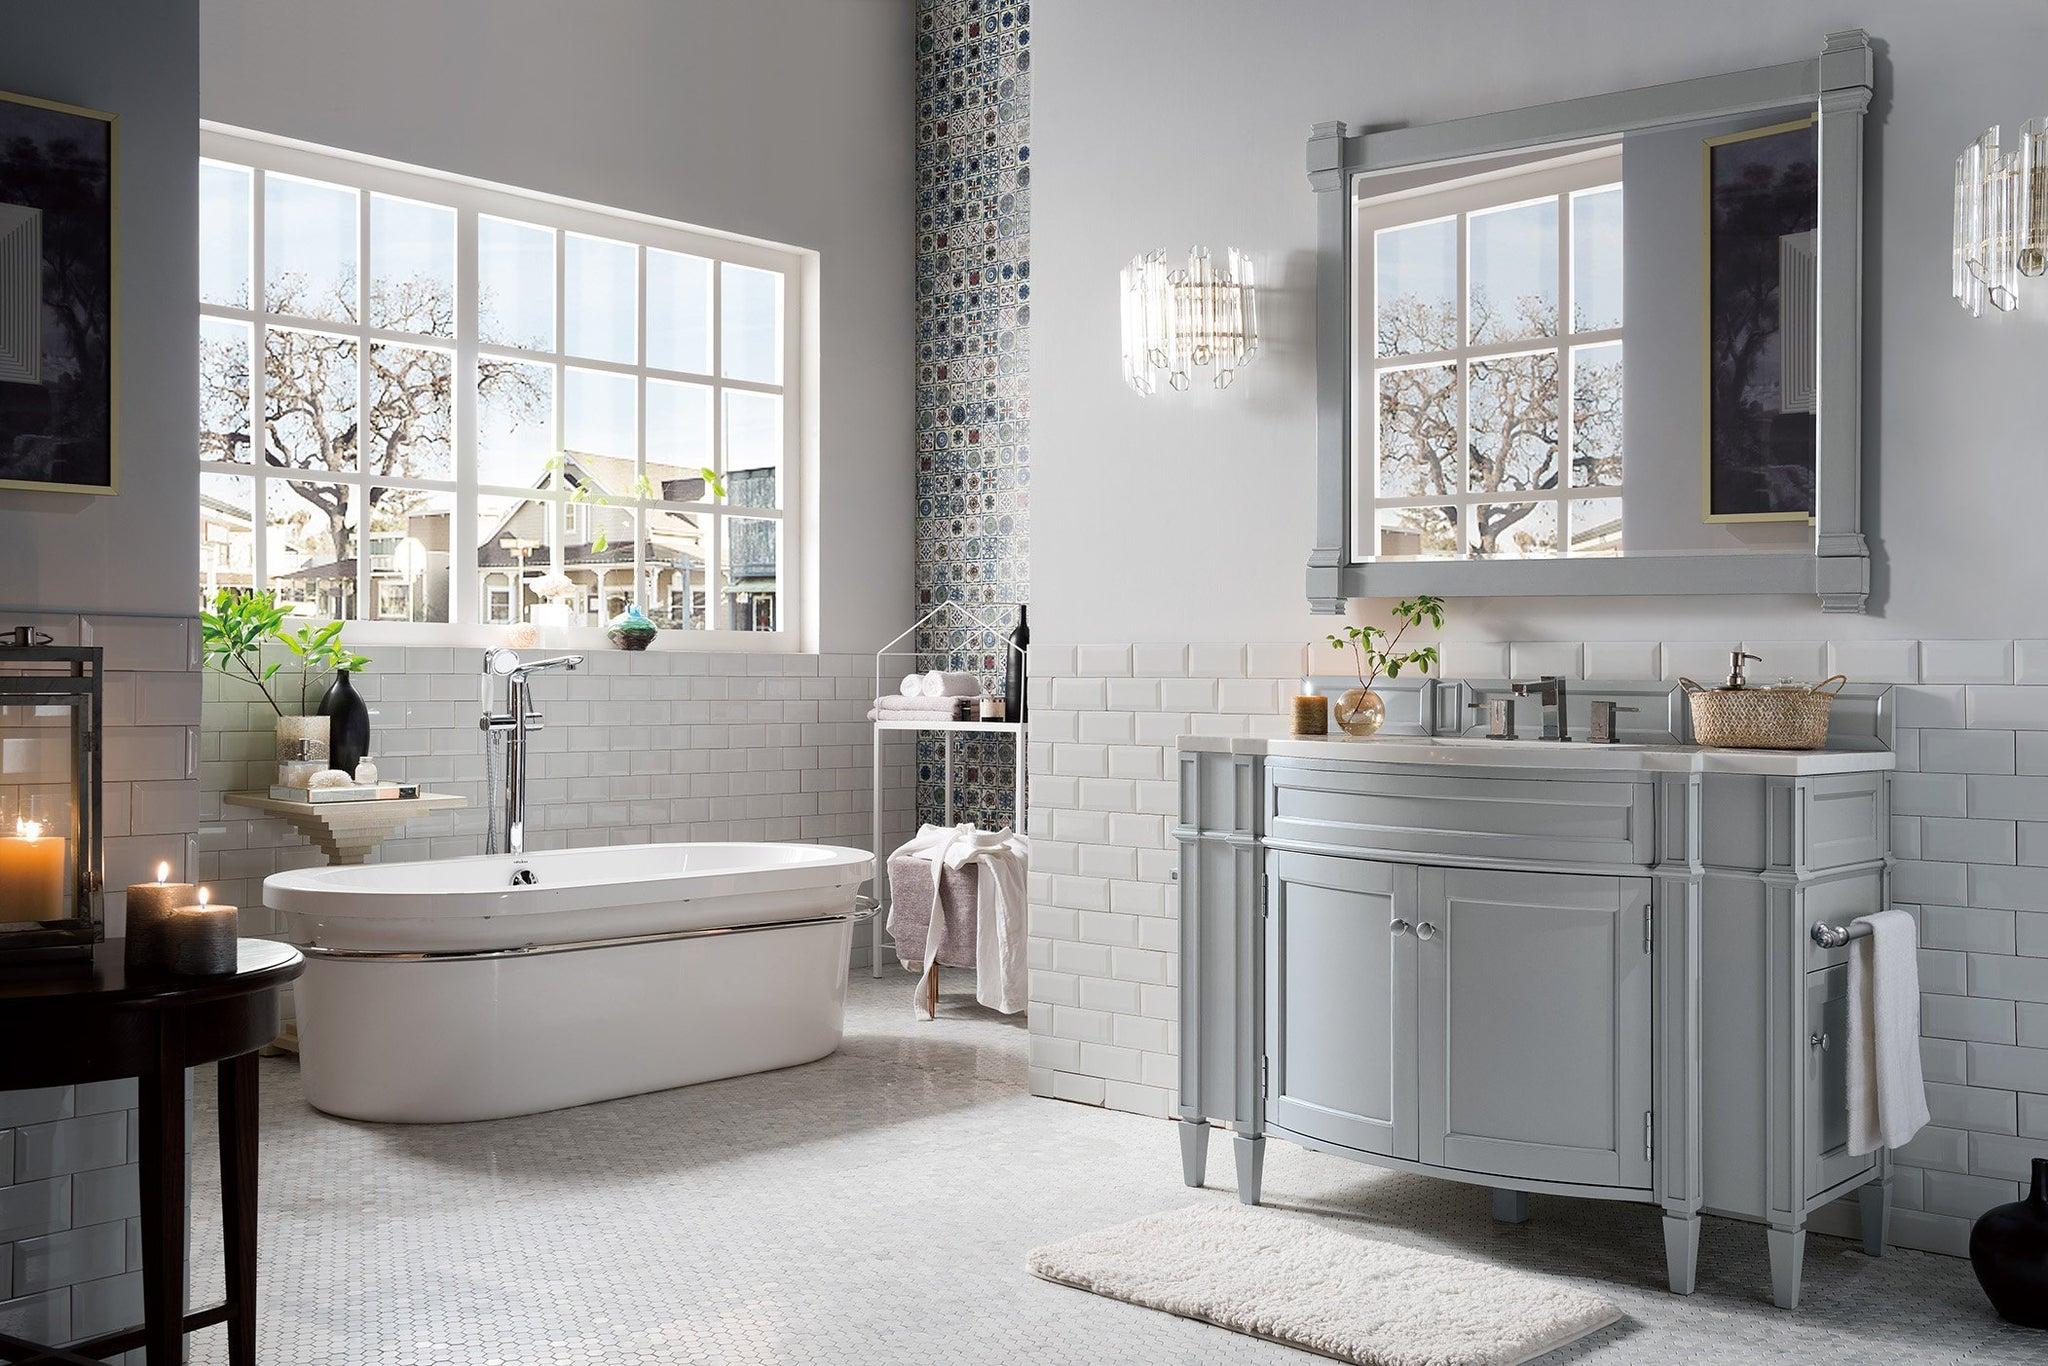 "Brittany 46"" Single Bathroom Vanity Single Bathroom Vanity James Martin Vanities"